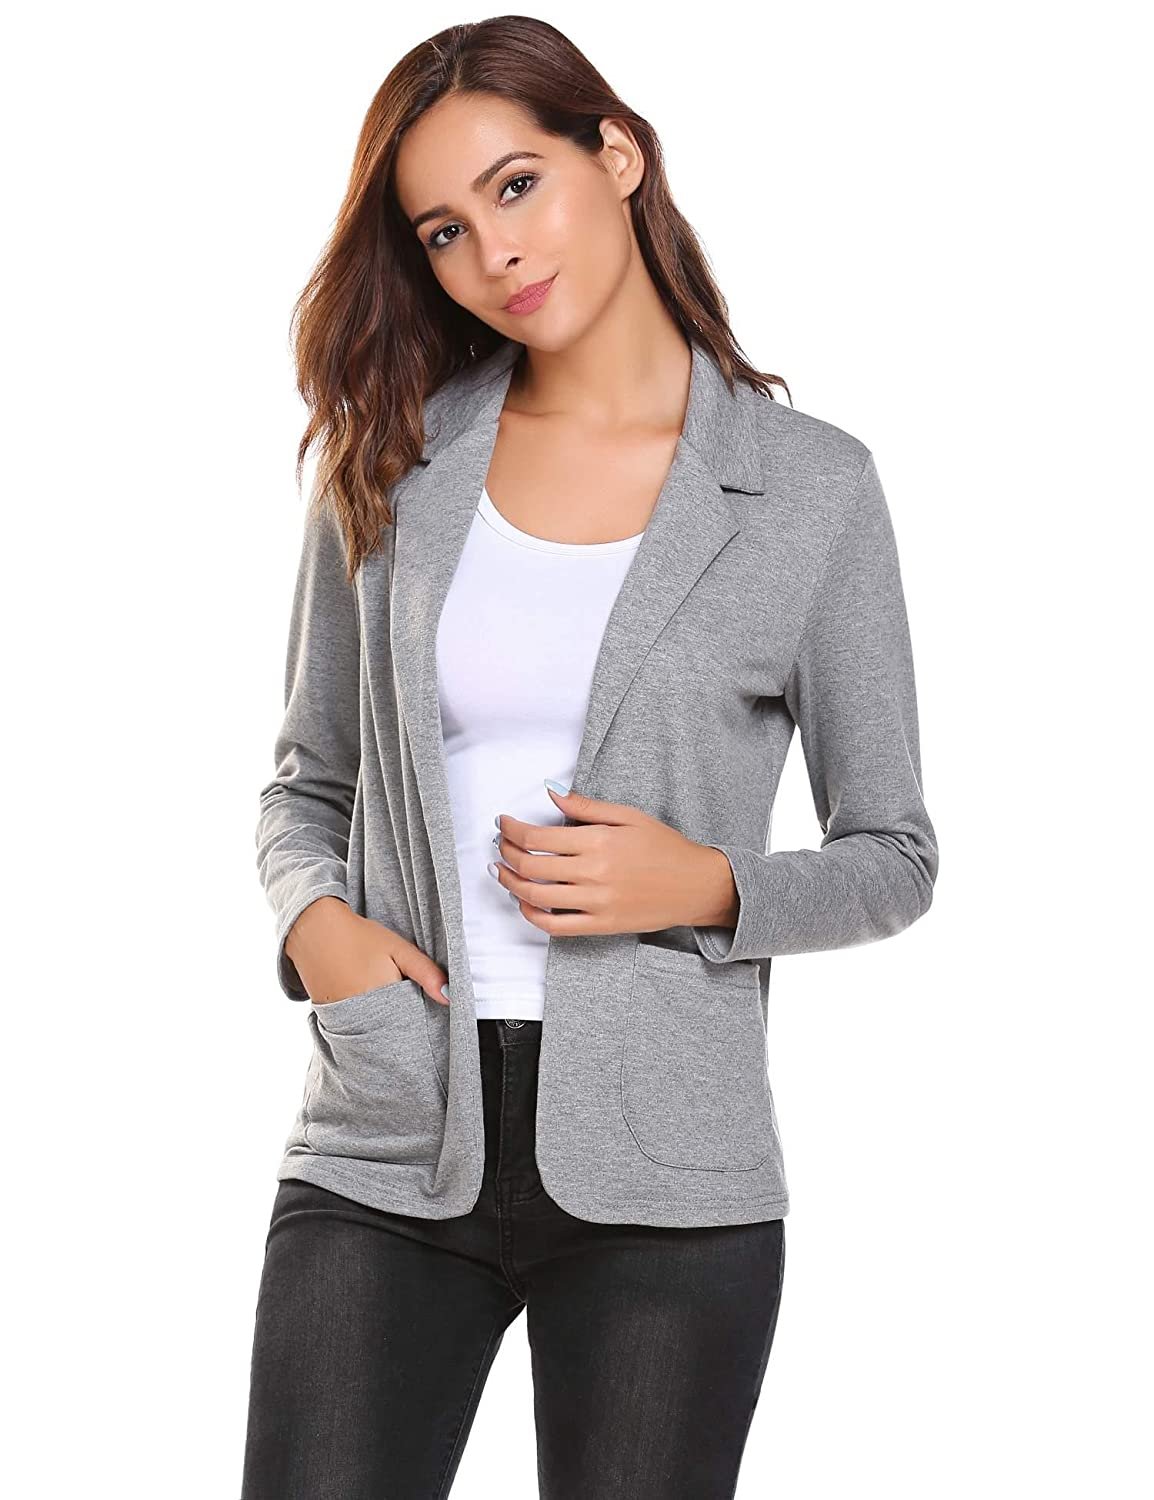 93d06898063 Amazon.com: Fanala Black Blazer for Women red Suit Jacket Womens Womens  Formal Jackets Casual Jackets: Clothing